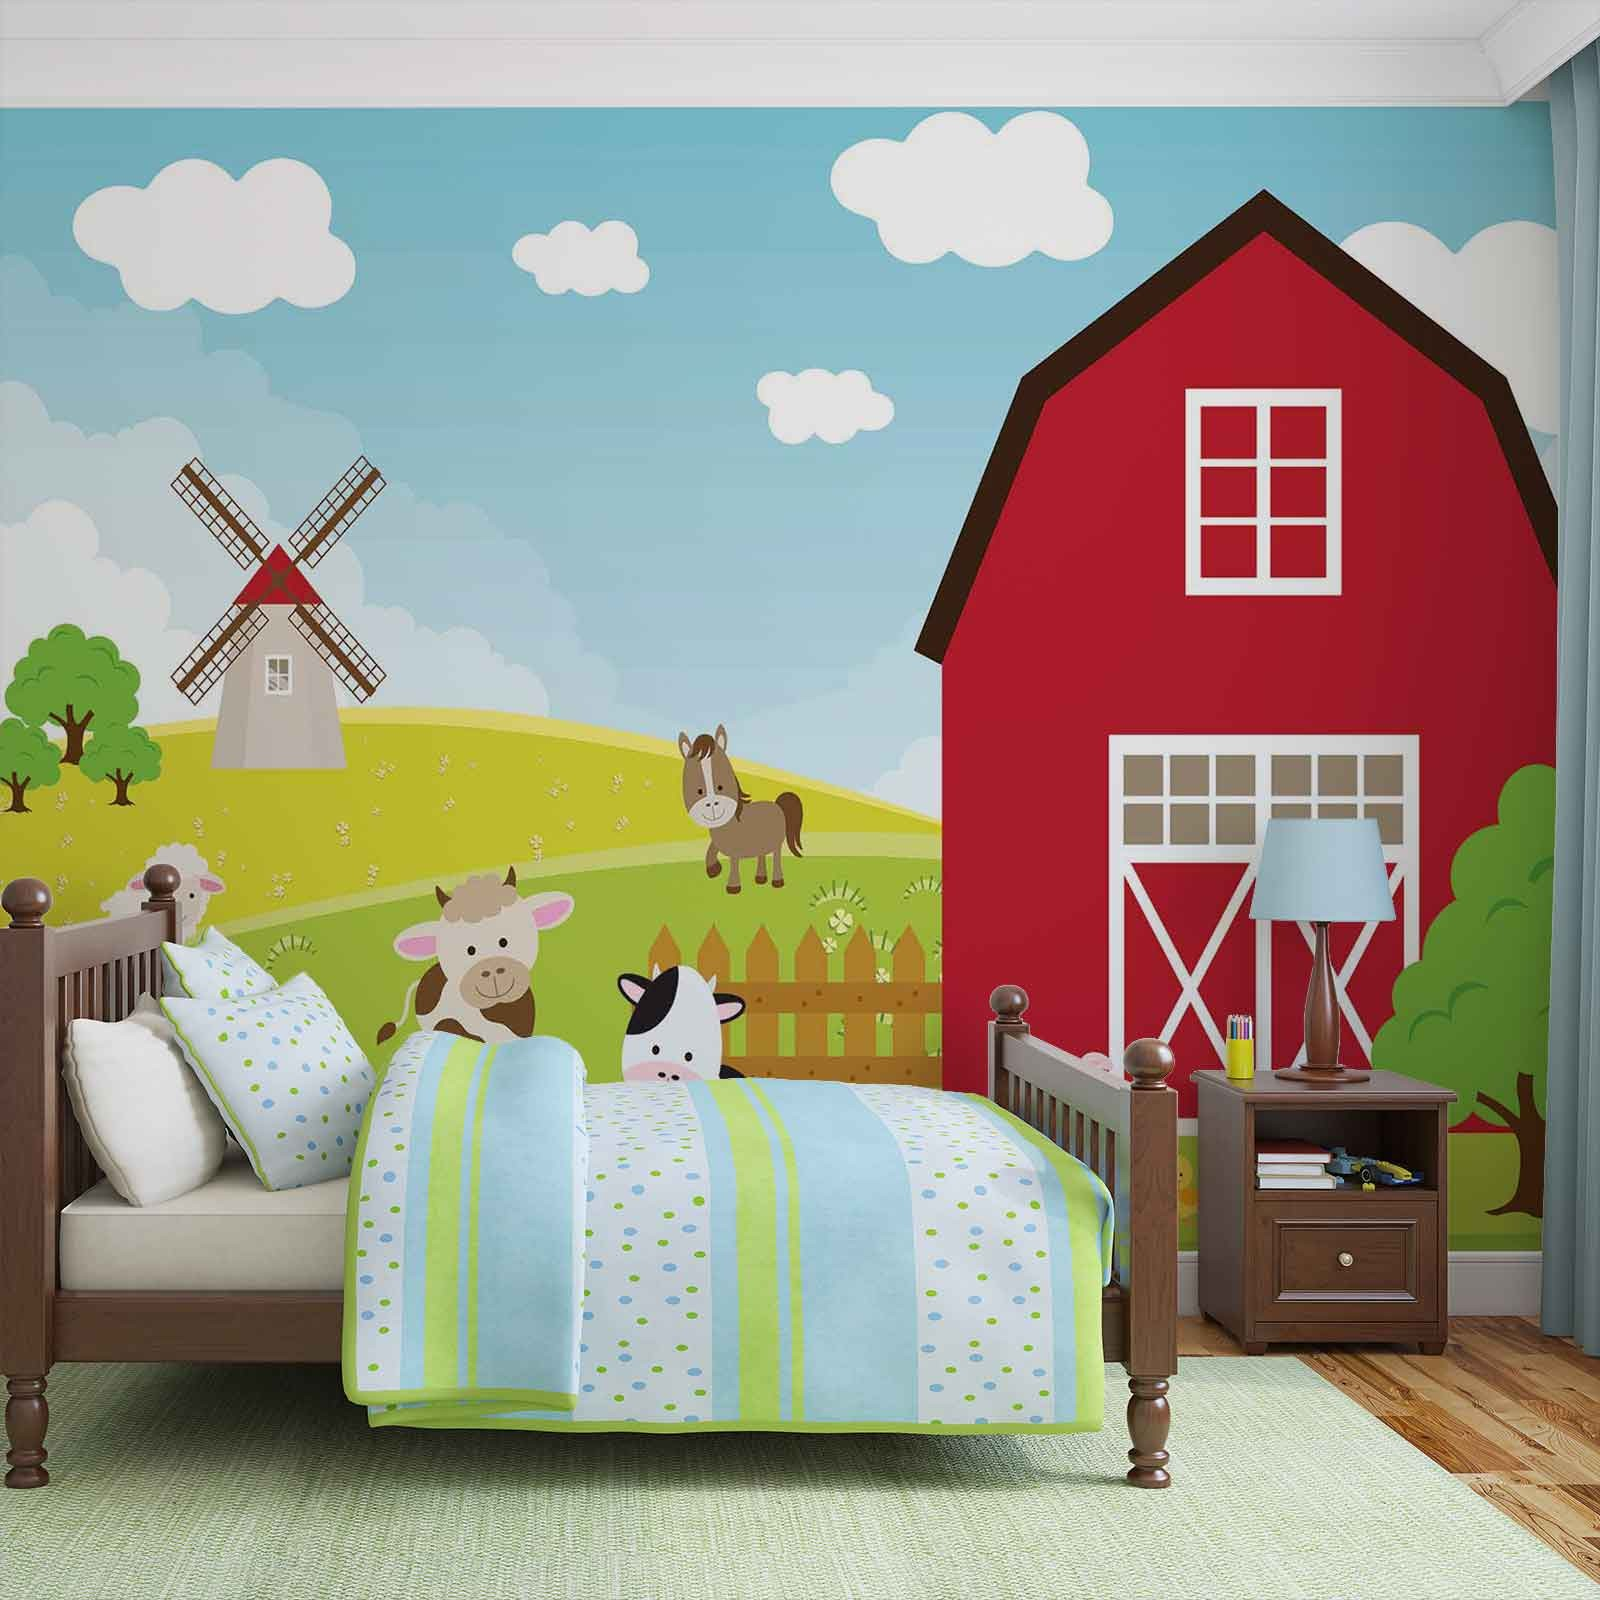 Farm Mural to Decorate Your Kid's Room